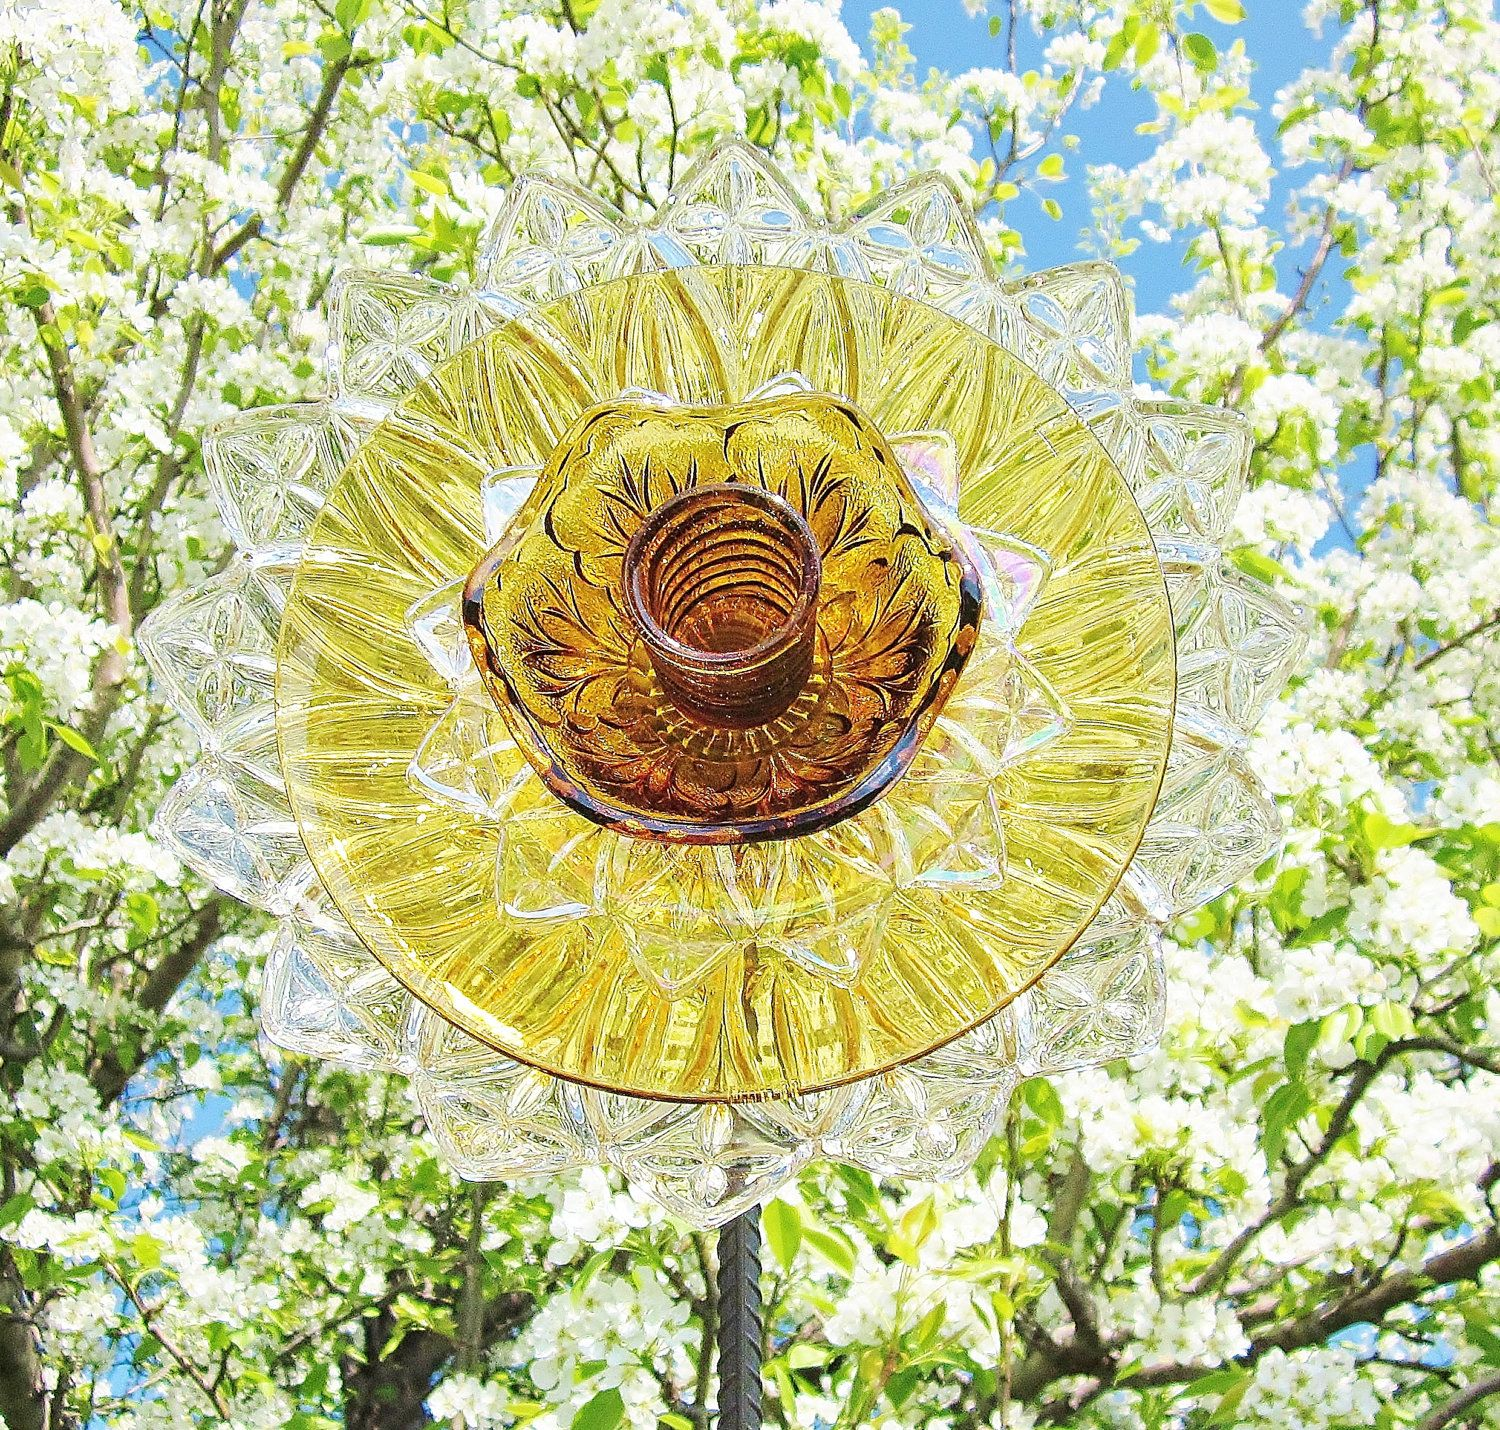 How to make glass yard art - Flower Garden Art Glass Yard Stake Outdoor Decor Upcycled Recycled Amber